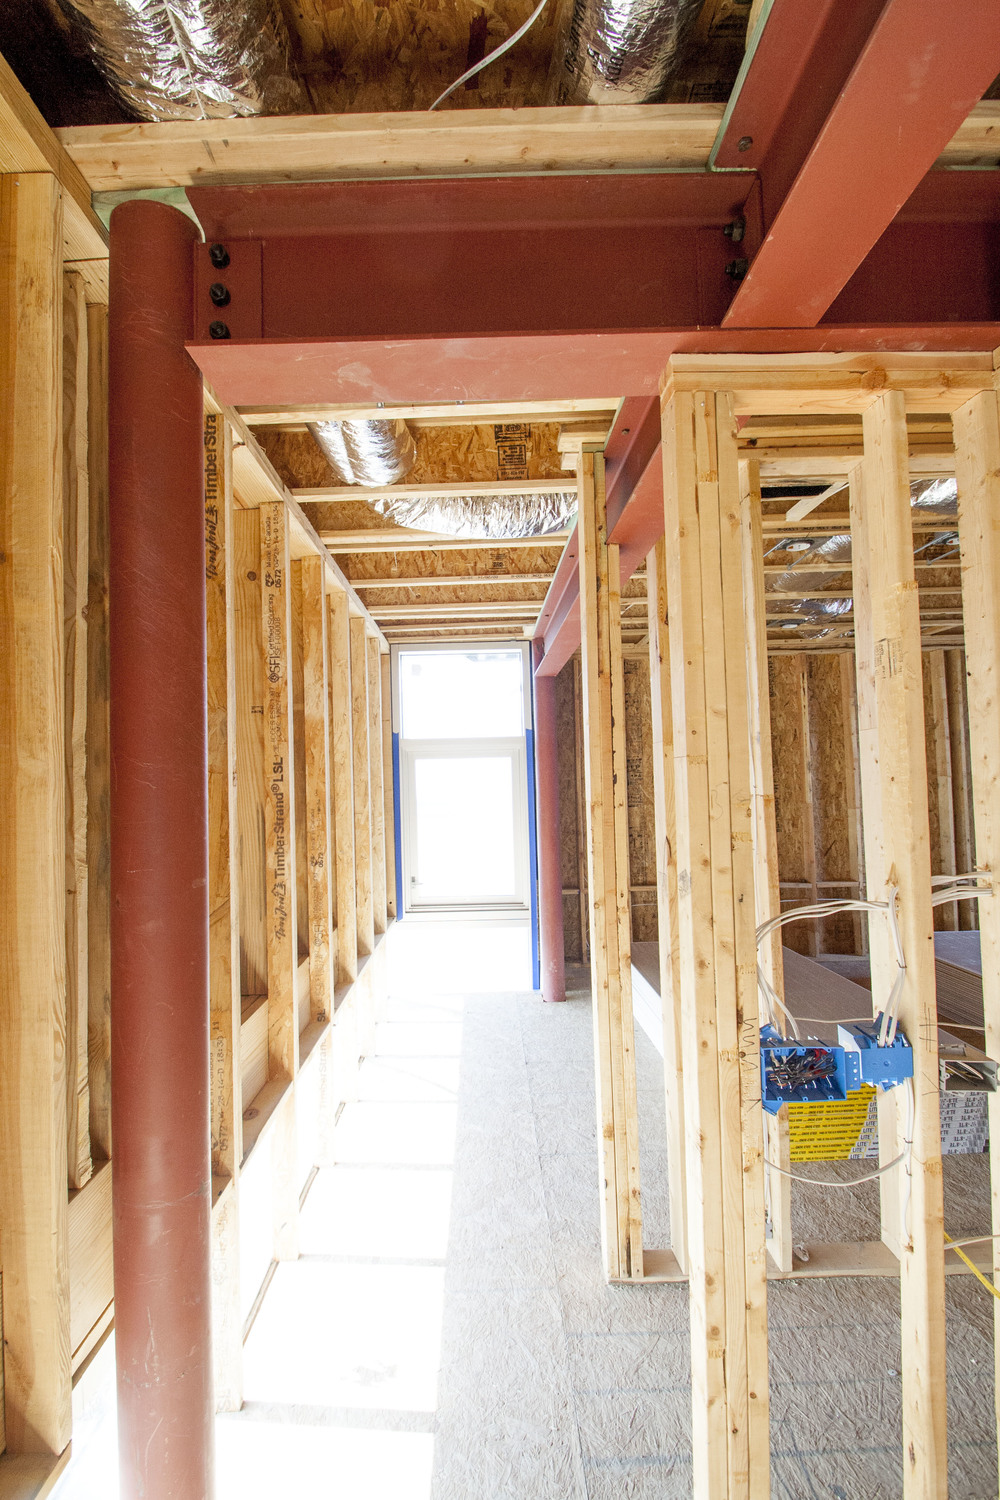 constructionphotos_Page_14.jpg